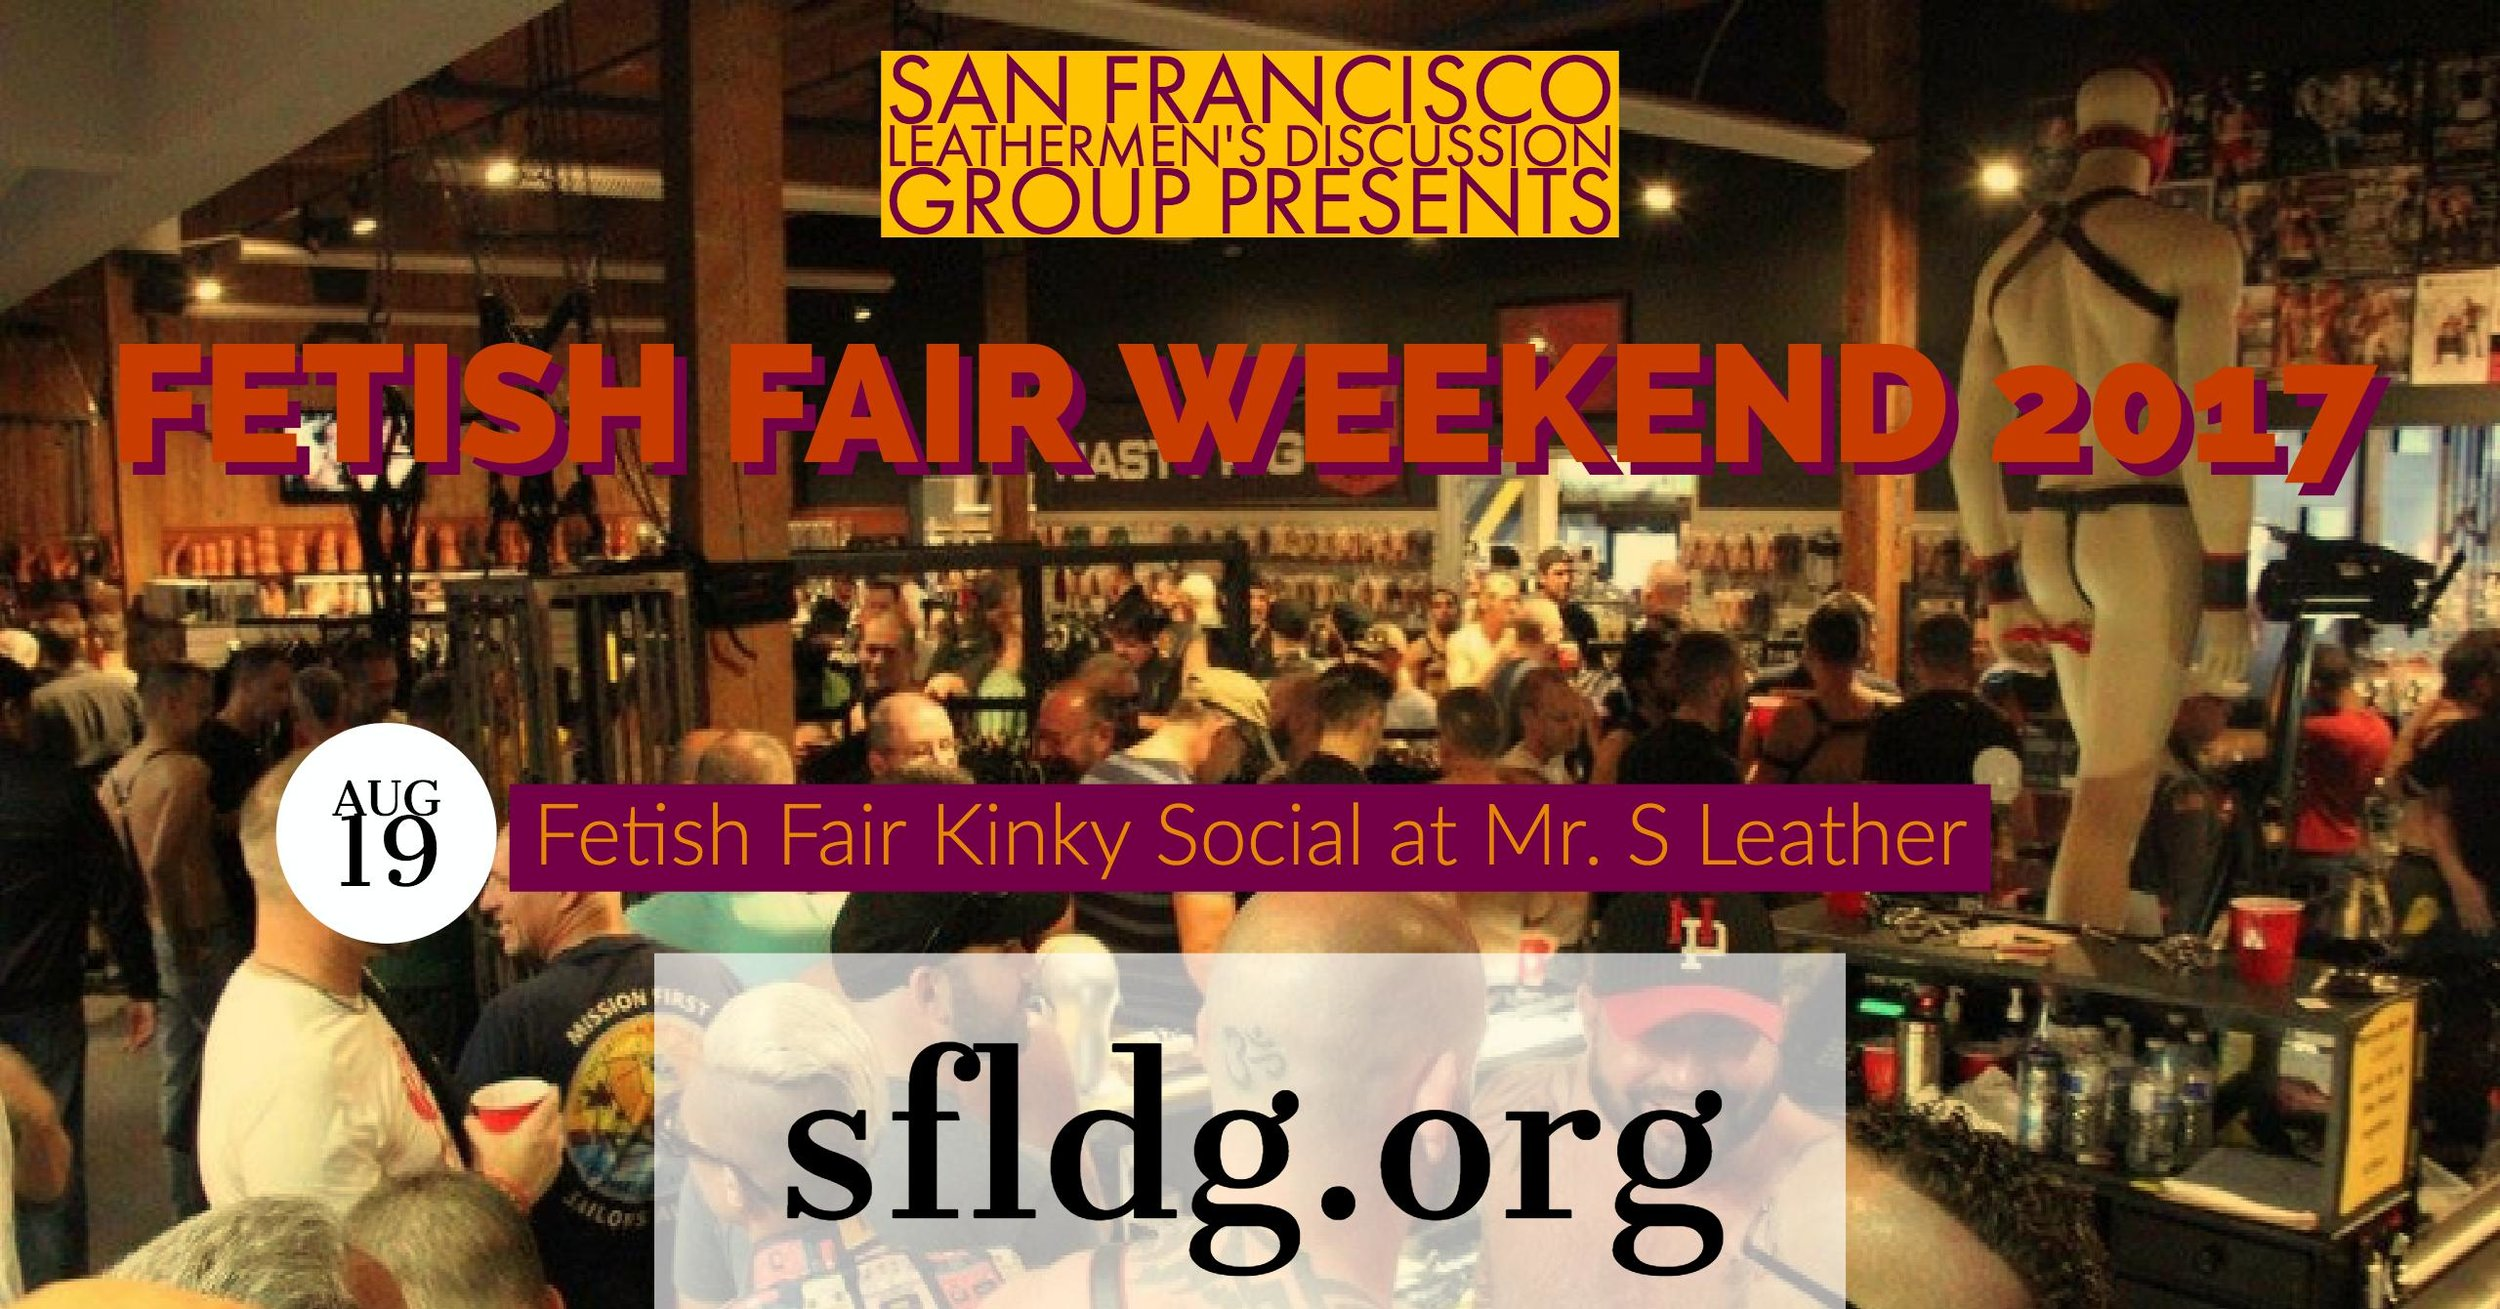 LDG Fetish Fair Kinky Social at Mr. S Leather   Saturday, August 19 at 2 PM - 4 PM  Mr. S Leather - 385 8th St, San Francisco, California 94103   https://www.facebook.com/events/1893508030910864/   Need to get your fix of gear and have a great time doing it? Come to Mr. S to shop for the latest gear, enjoy your favorite kinks and socialize with each other. This is a great way to show our monthly program's host support by visiting the store.